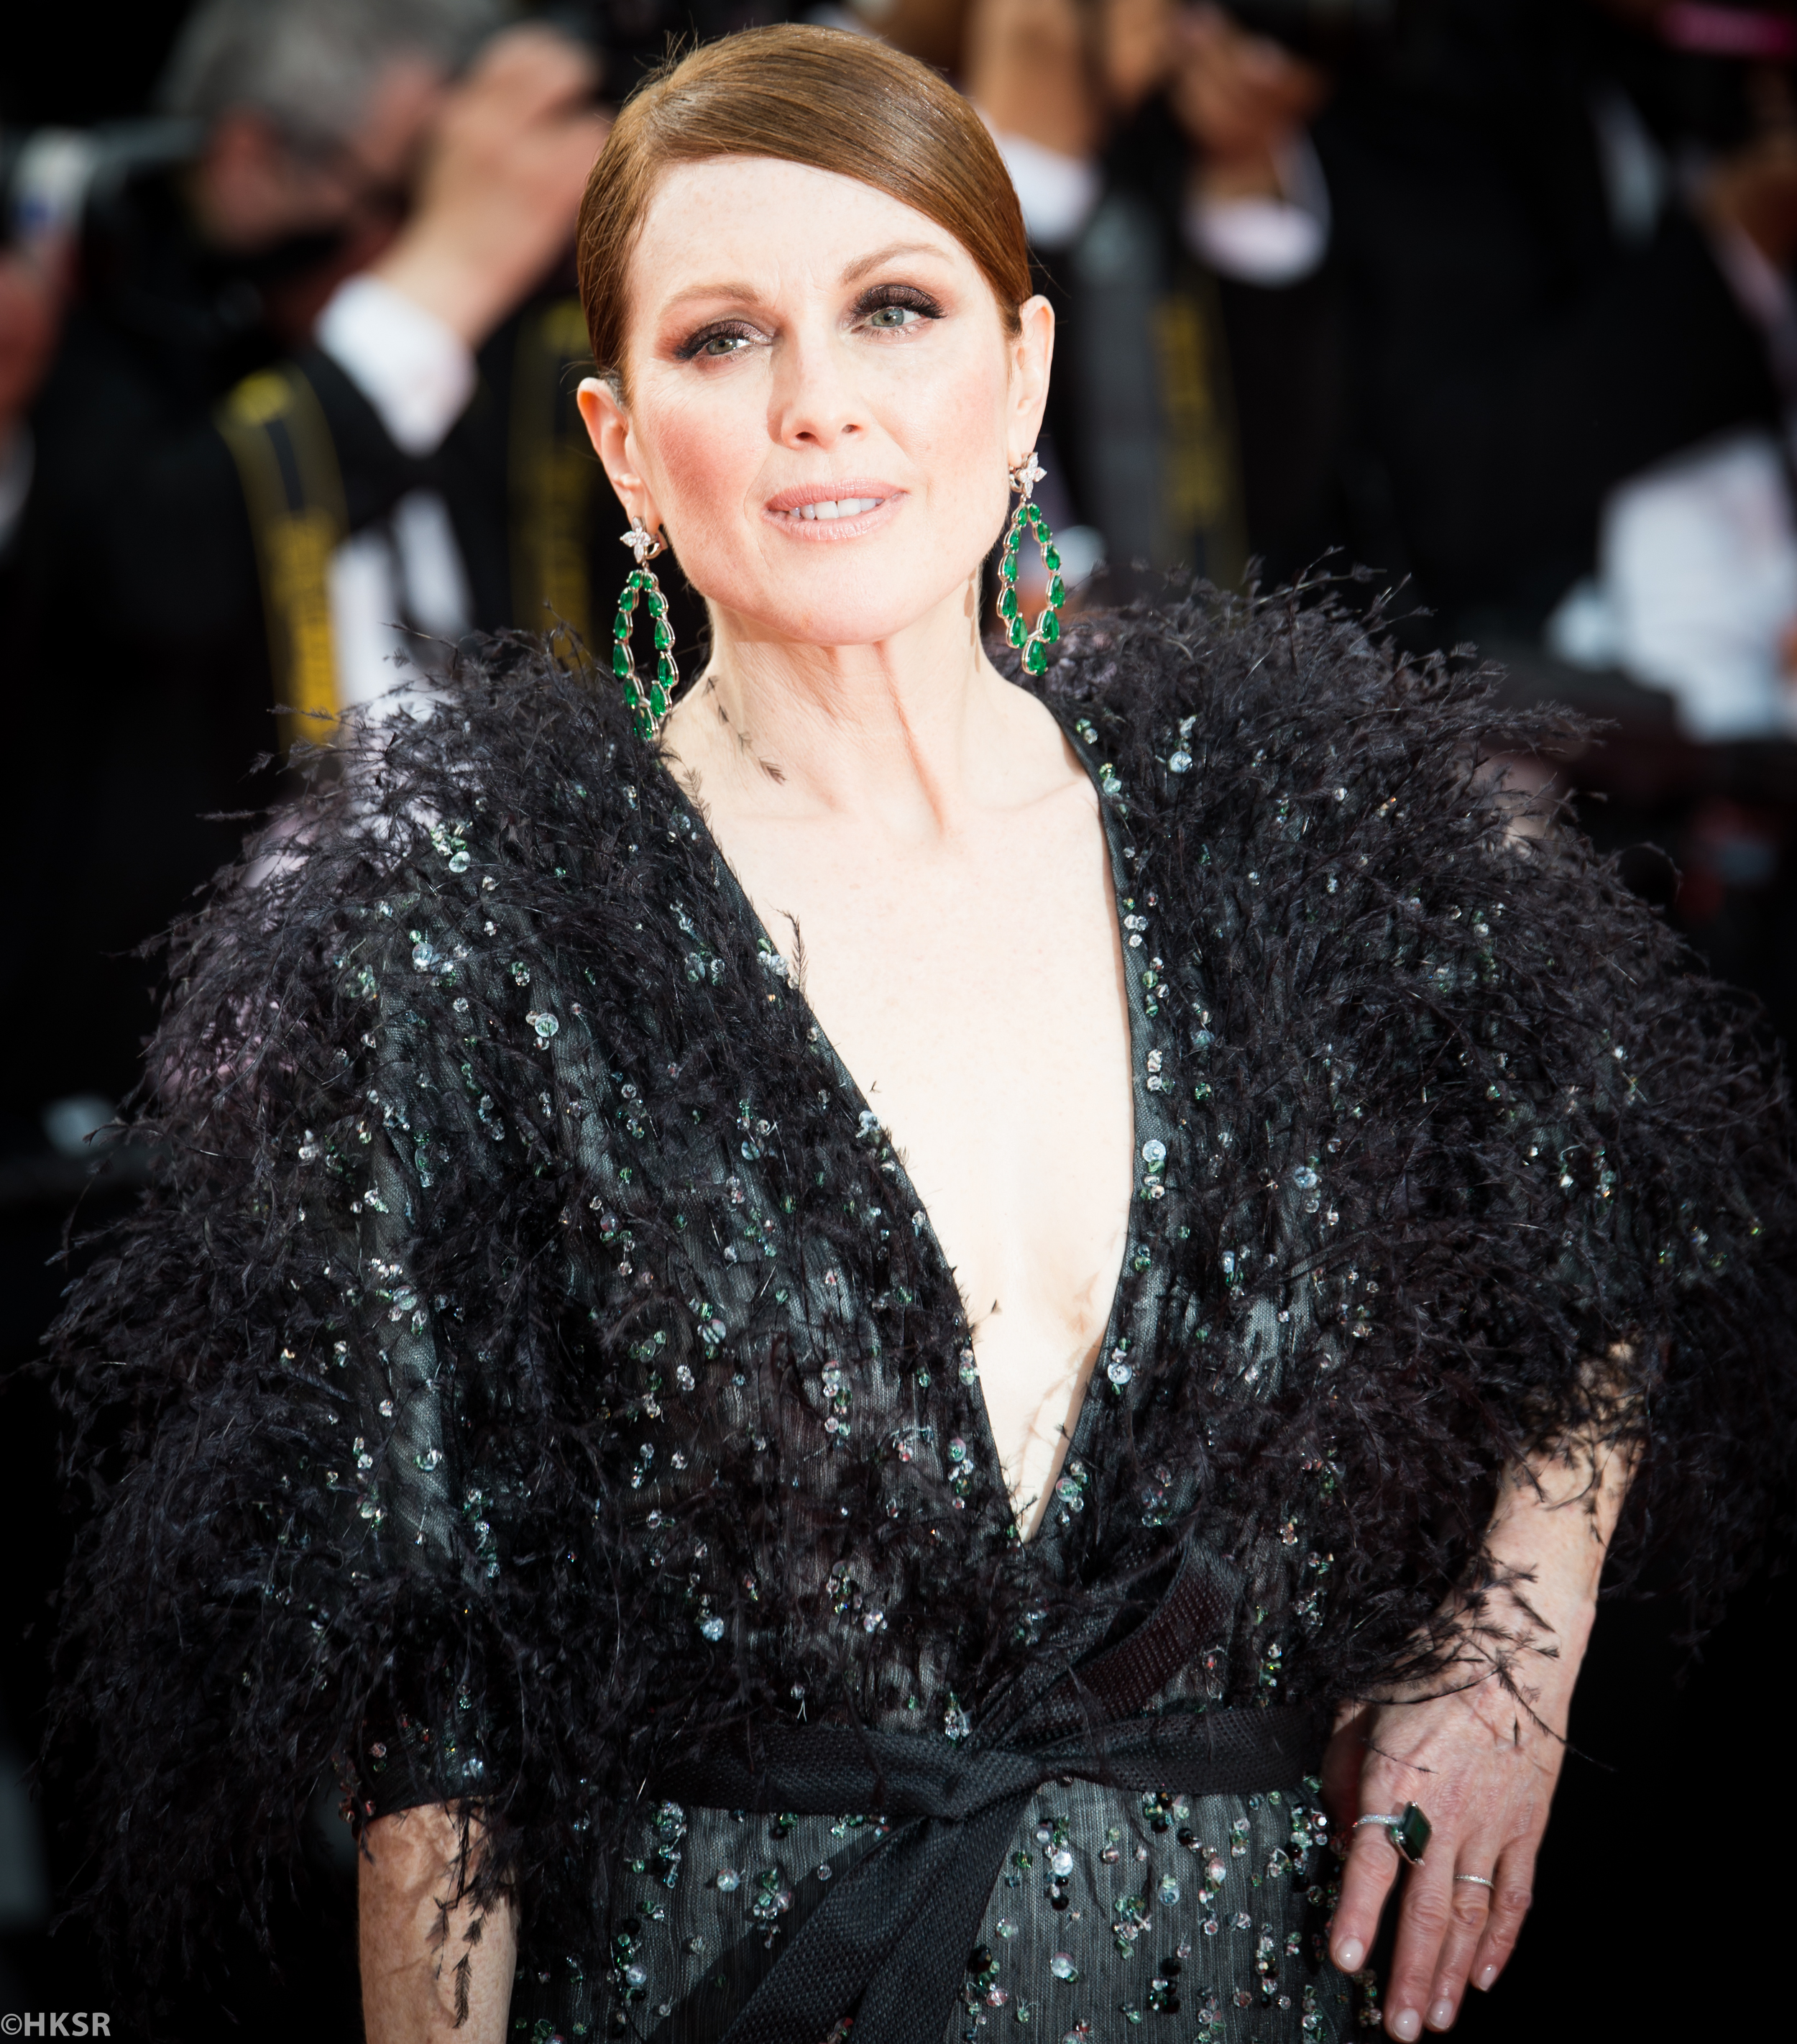 Julianne Moore  in   Armani Privé looked  stunning on the red carpet at Cannes 2015